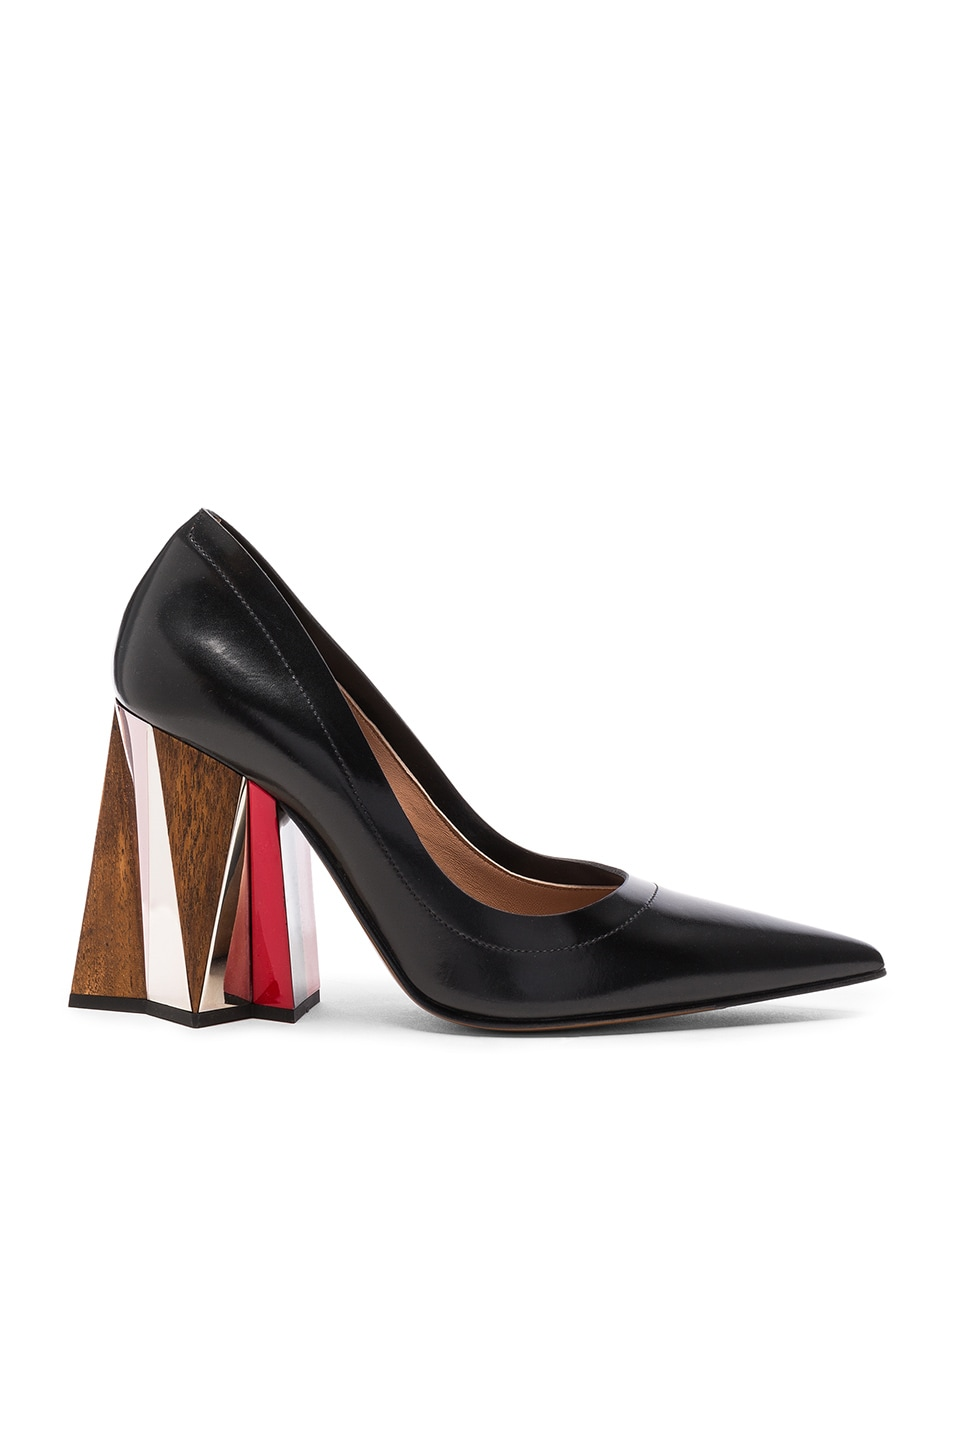 Image 1 of Marni Leather Pumps in Black